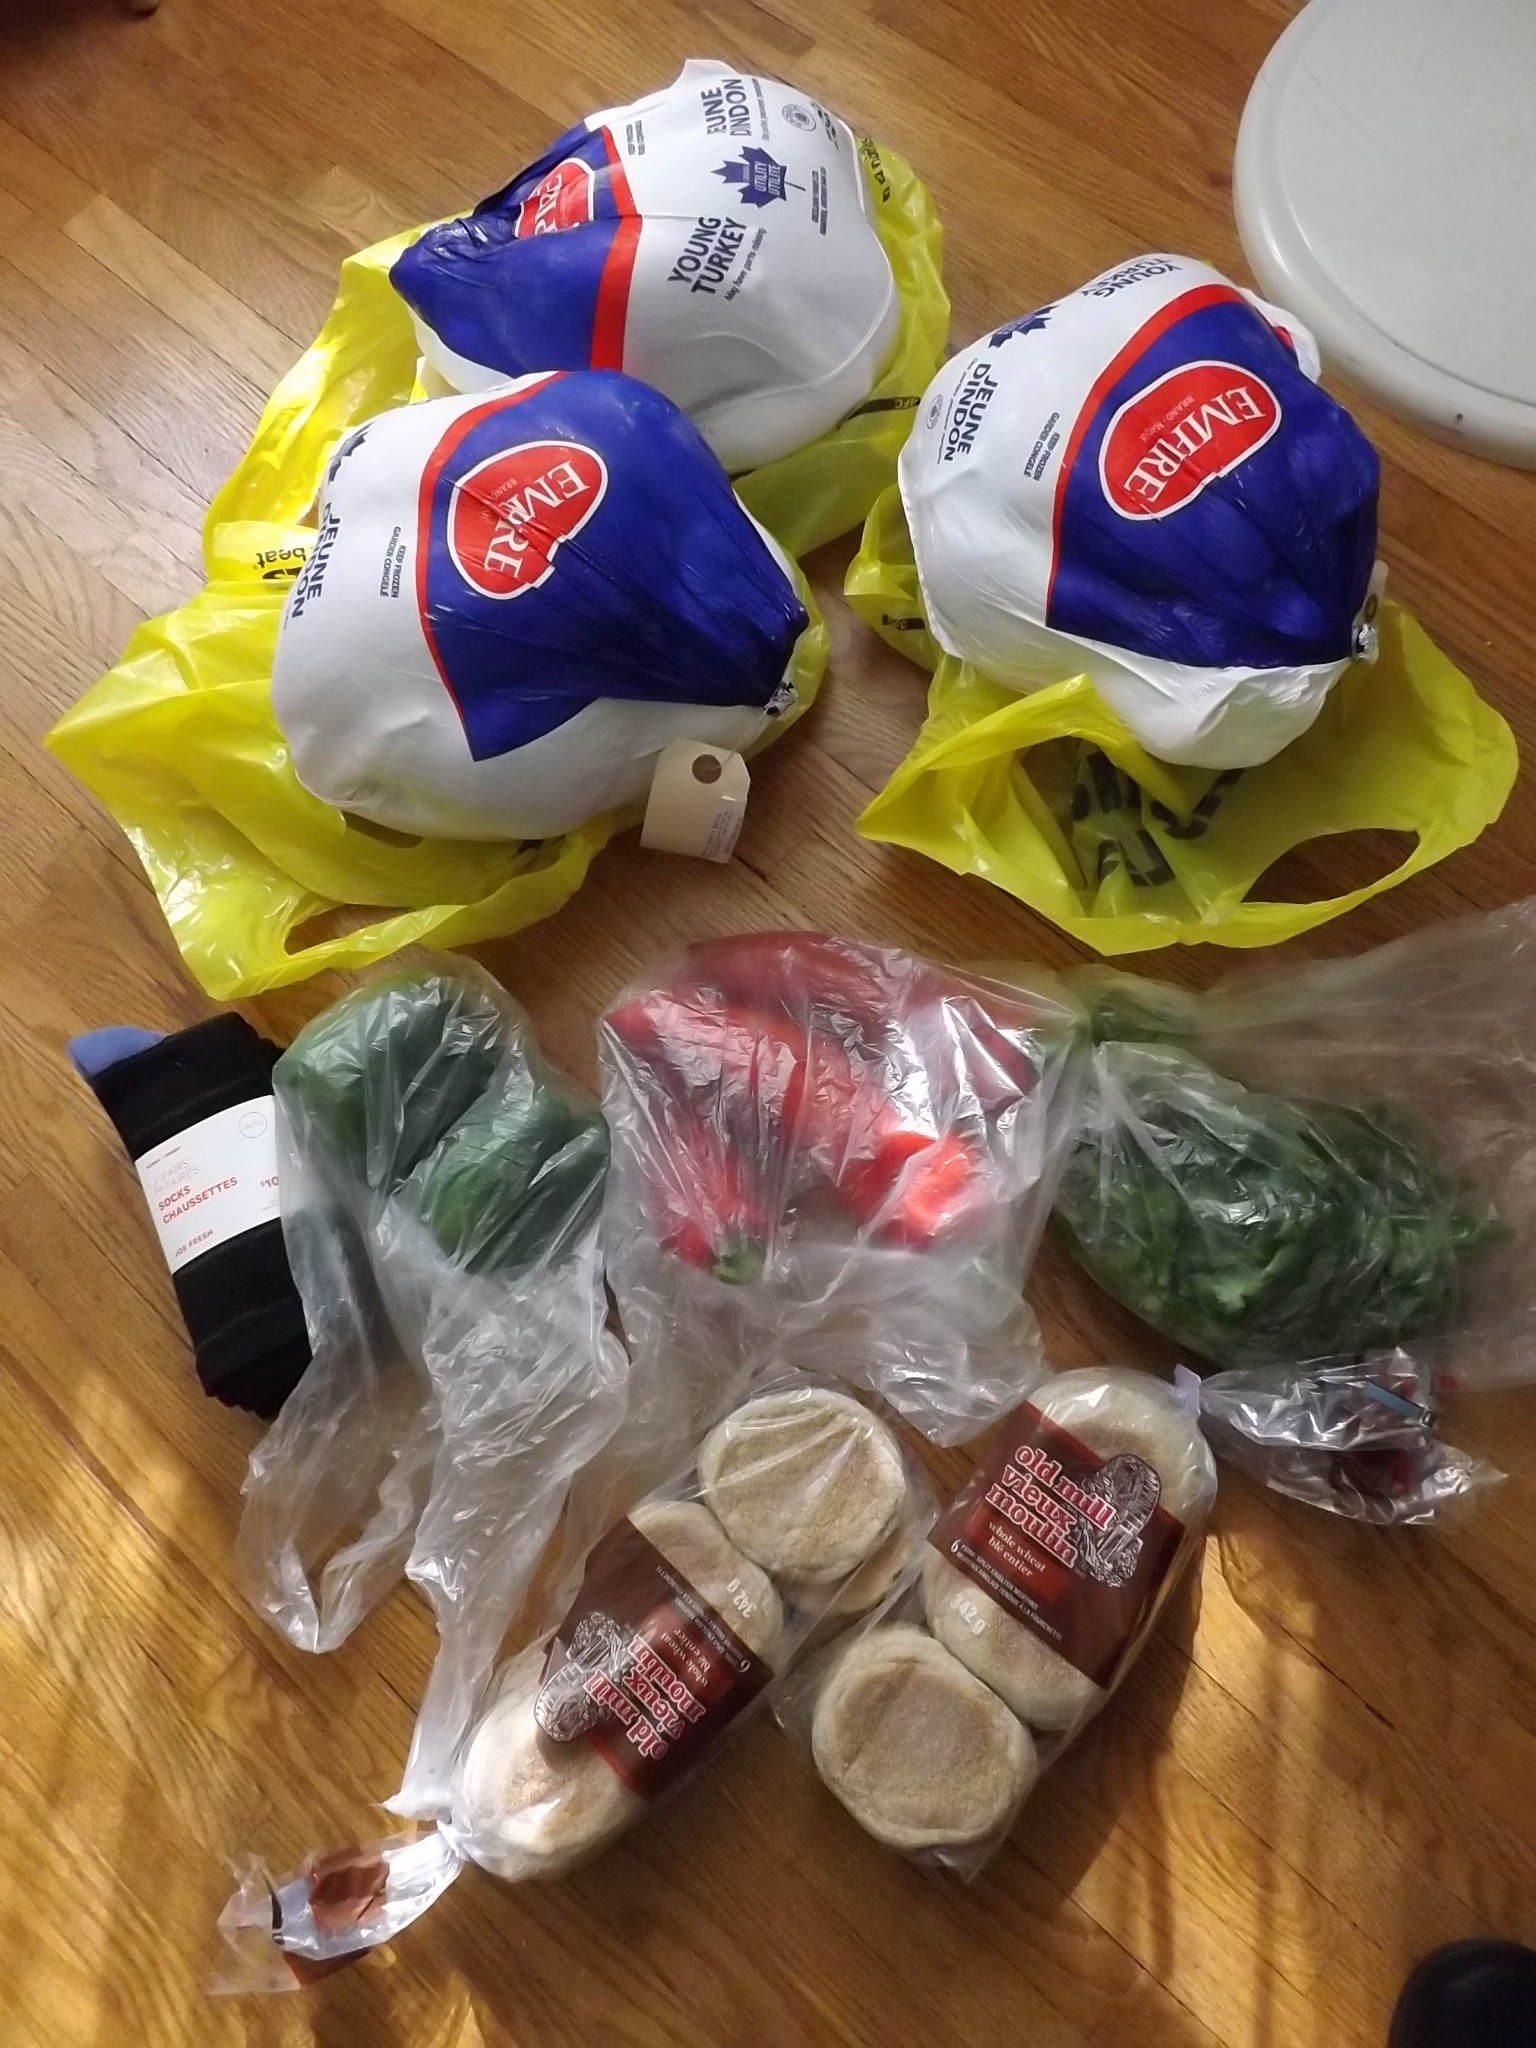 groceries with total cost of 95 cents, includes 3 frozen turkeys, socks, green peppers, red peppers cilantro and two packages of English Muffins.